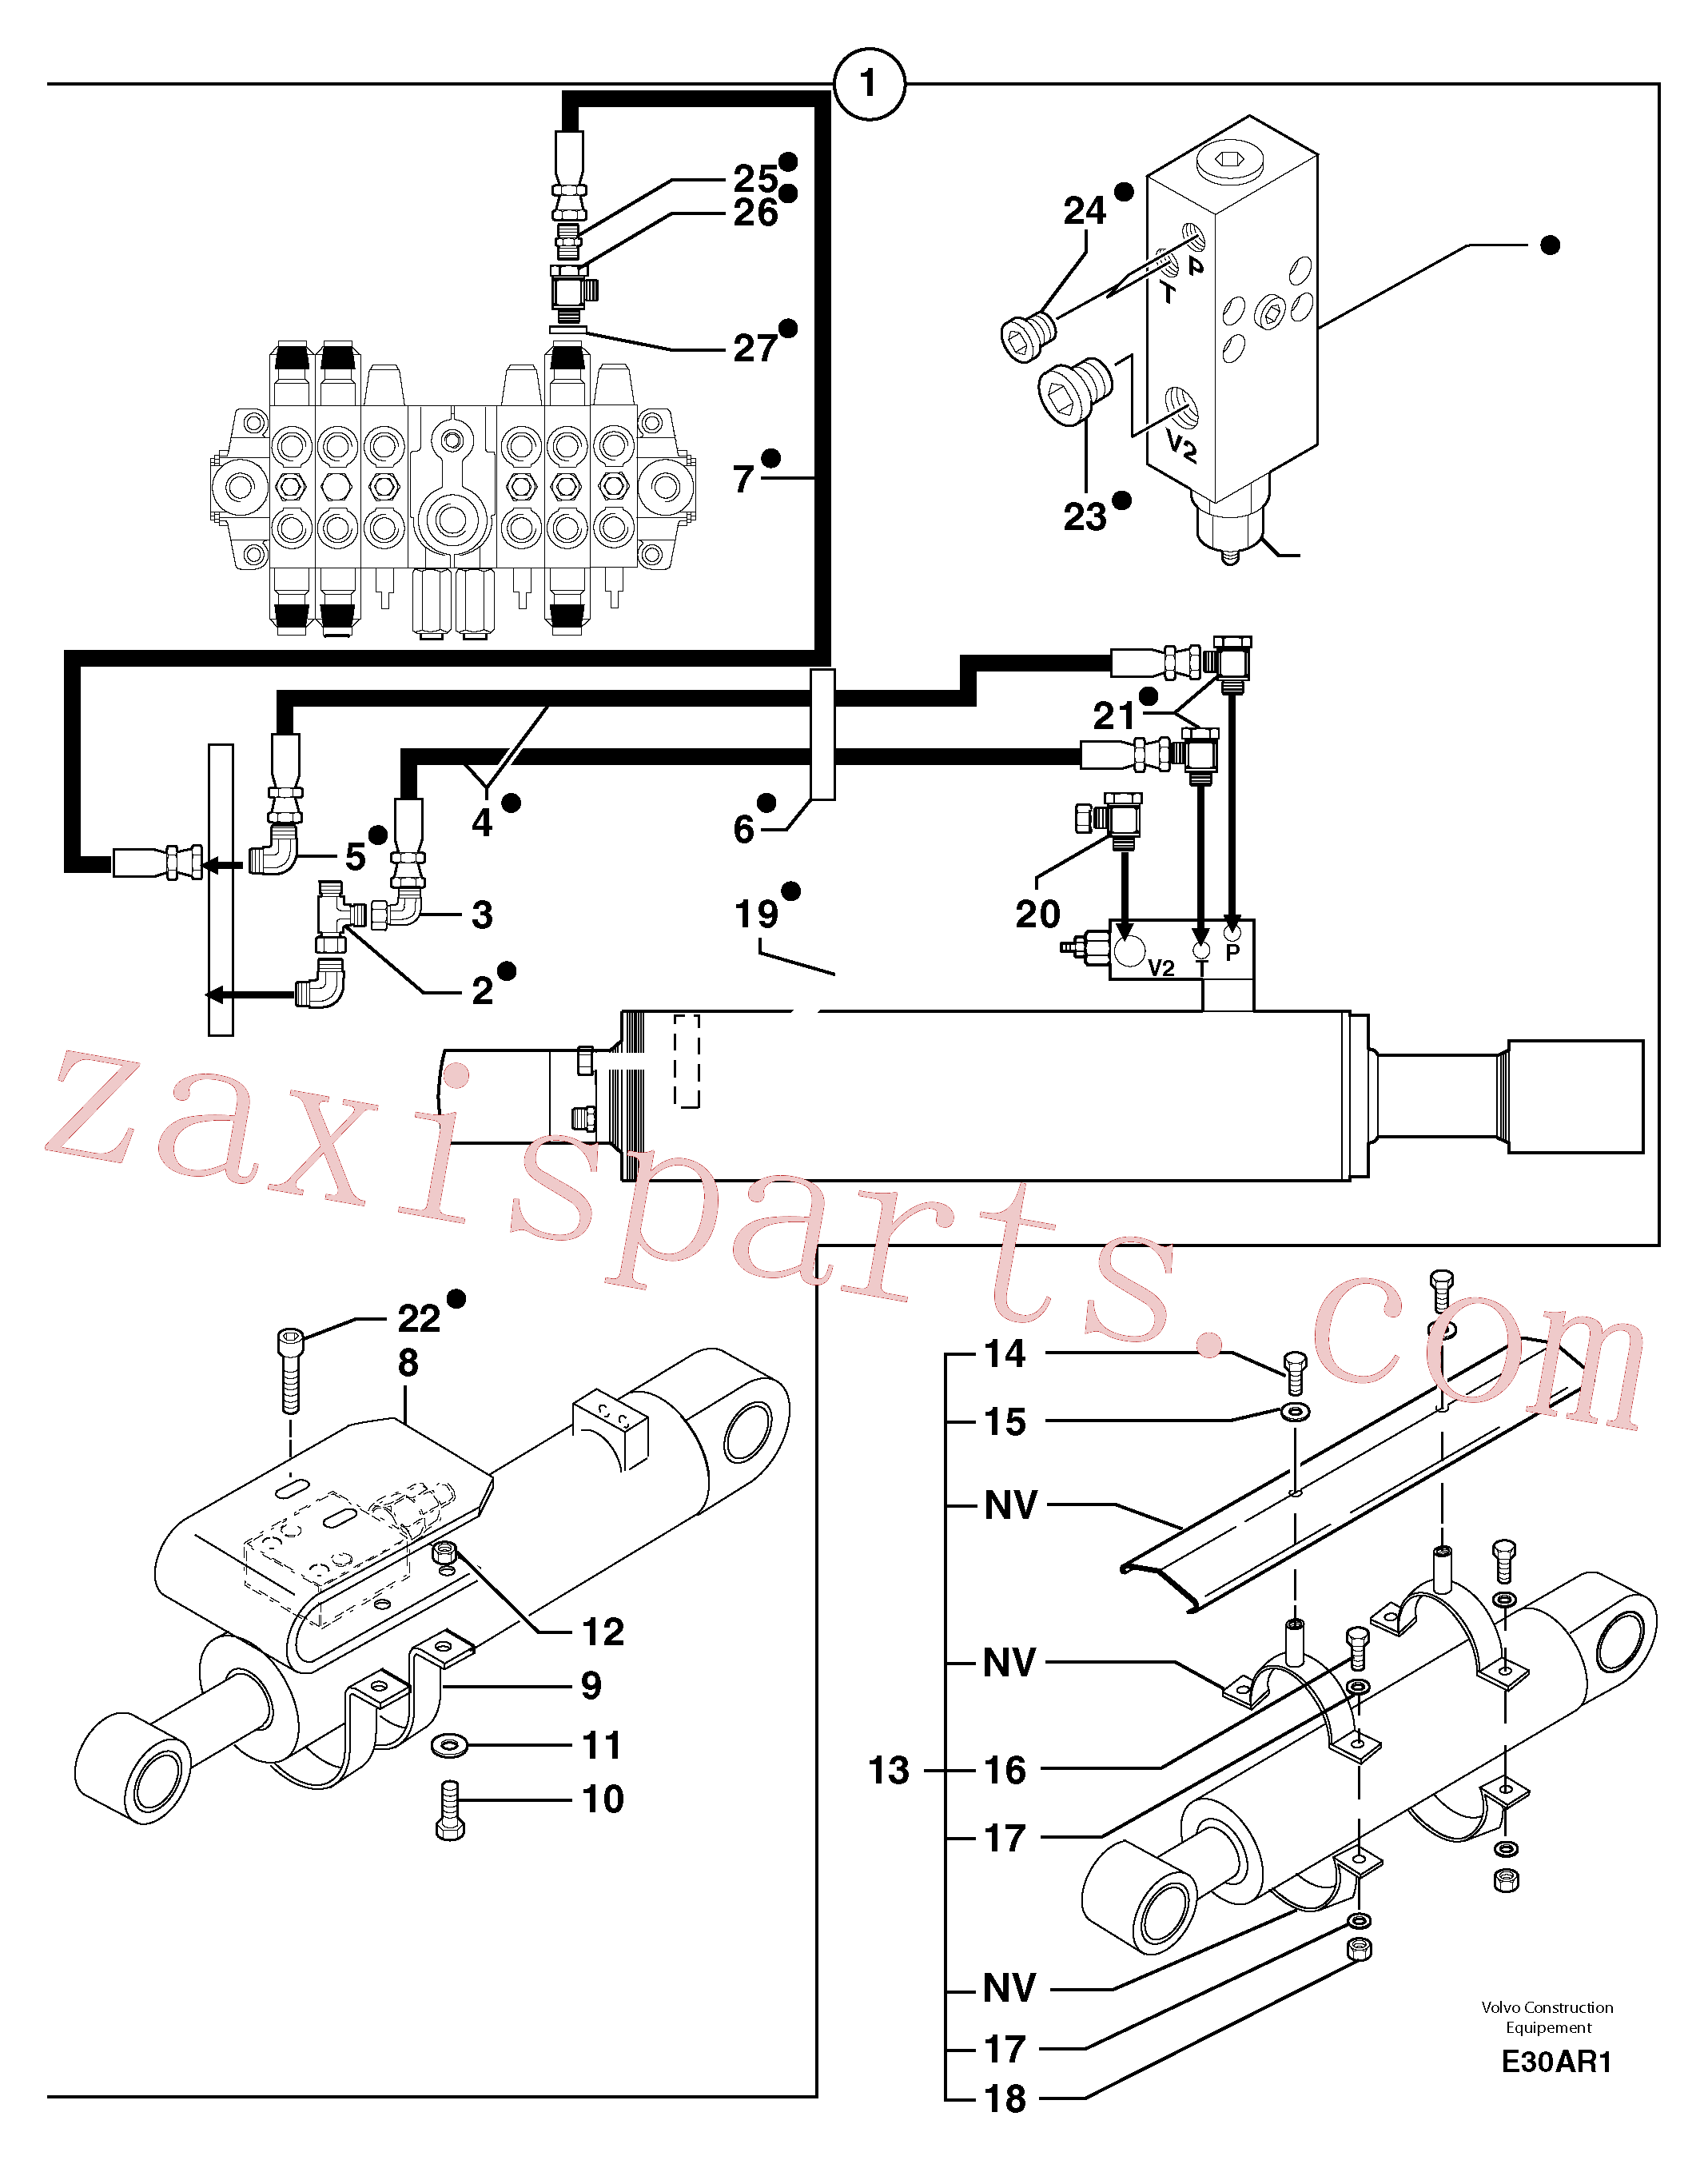 PJ6660258 for Volvo Supplement concerning handling operations / option(E30AR1 assembly)